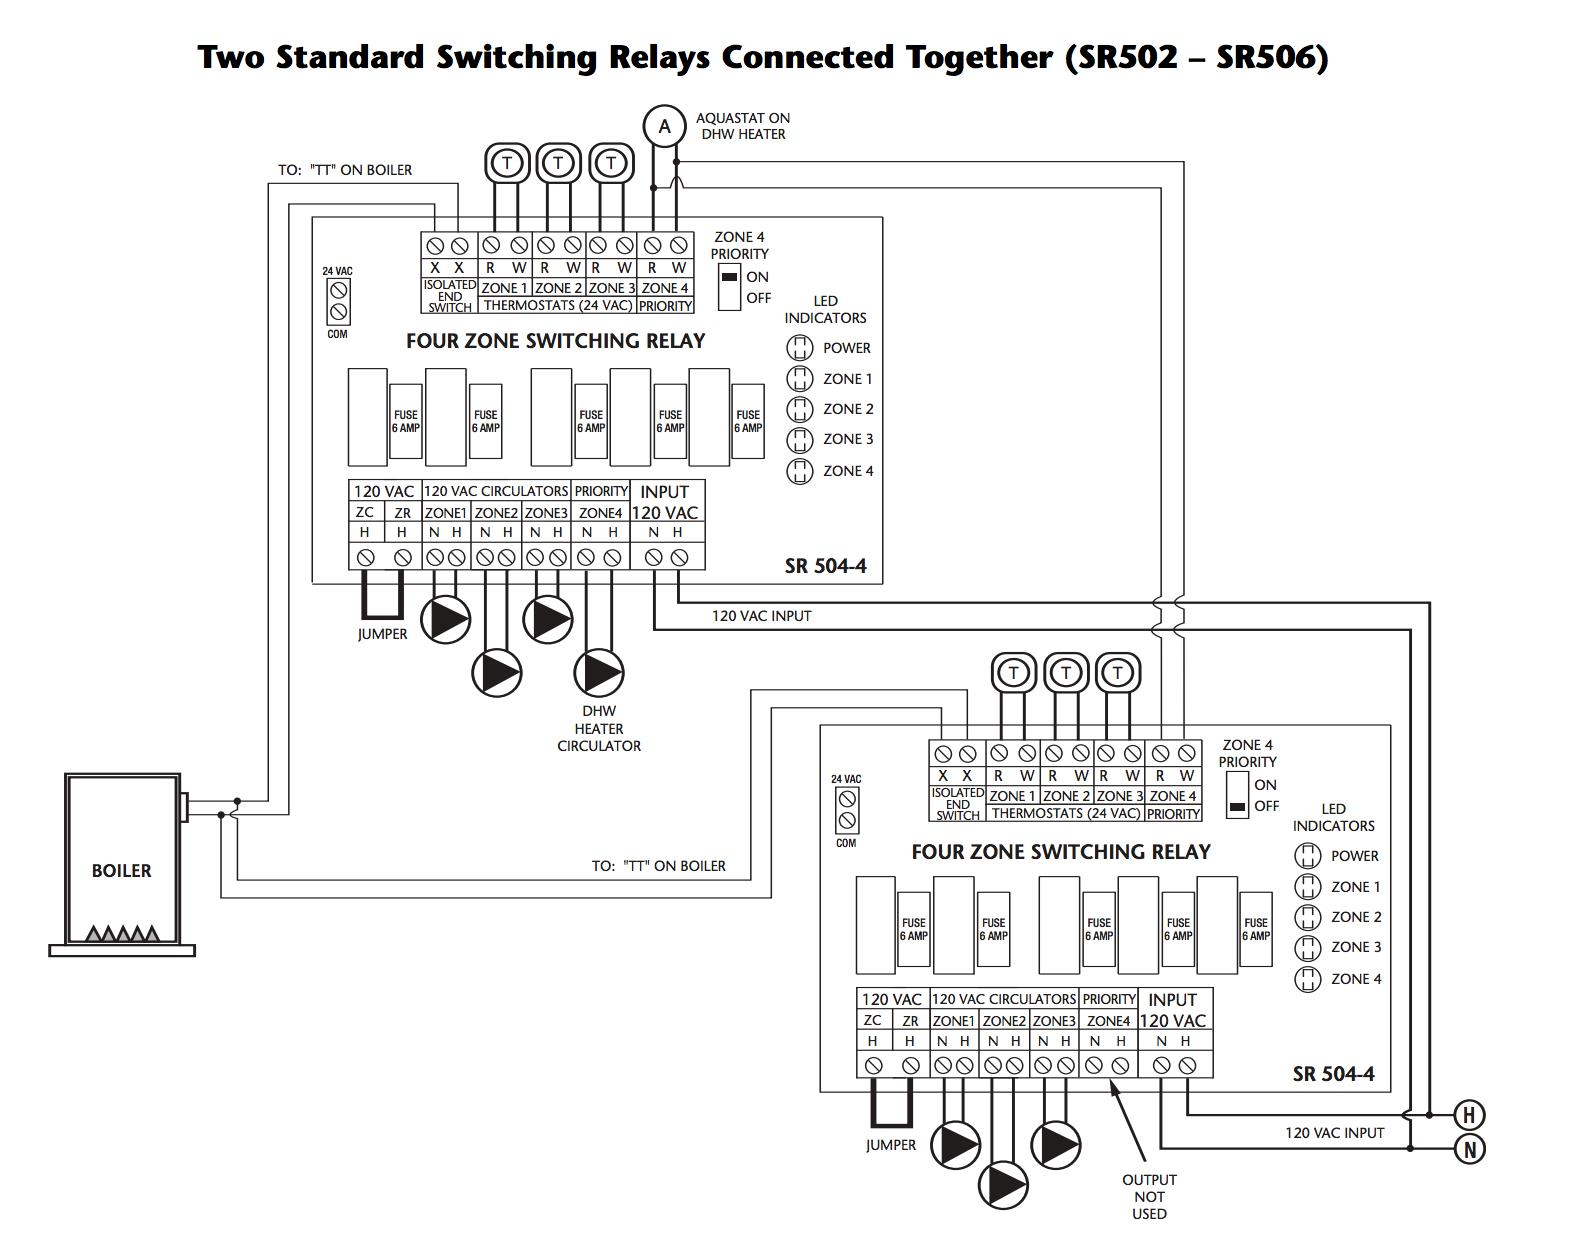 Taco Sr502 4 Wiring Diagram Wiring Diagram Schemes Boiler Controls Wiring  Diagrams Taco Sr502 Wiring Diagram 4